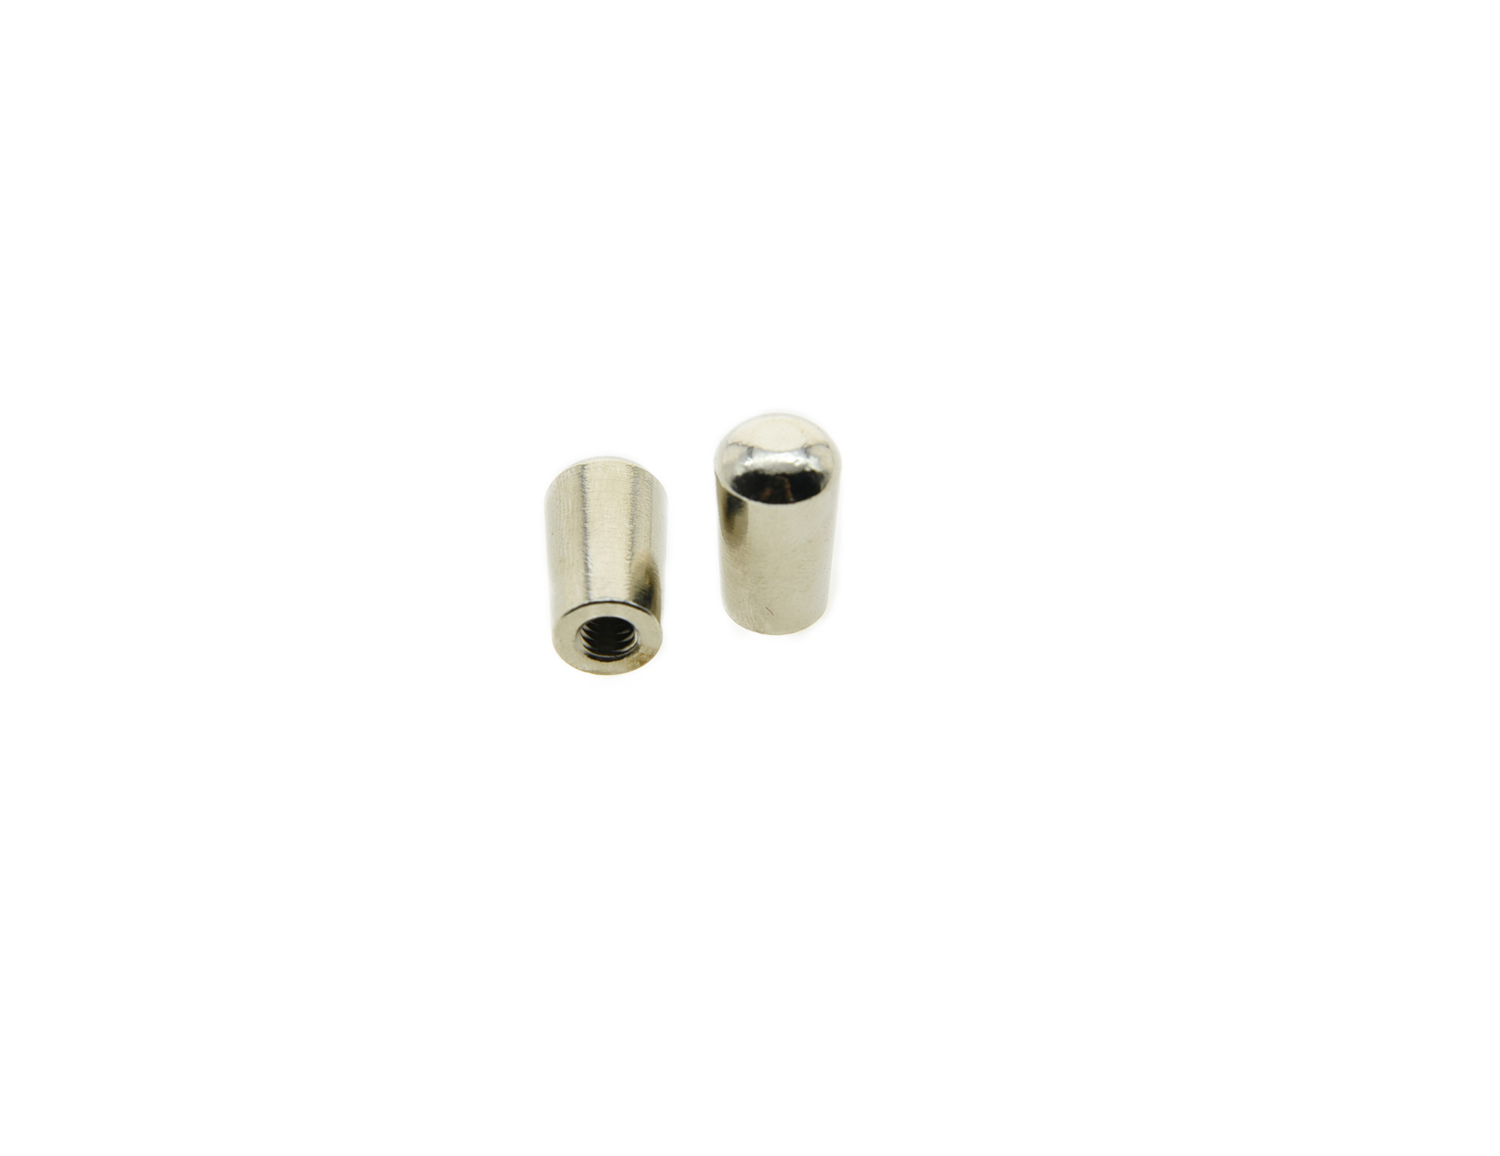 1xM3.5 1xM4 METAL LP Guitar Toggle Switch Tip Nickel 3 Way Switch Knob for LP phil collins singles 4 lp